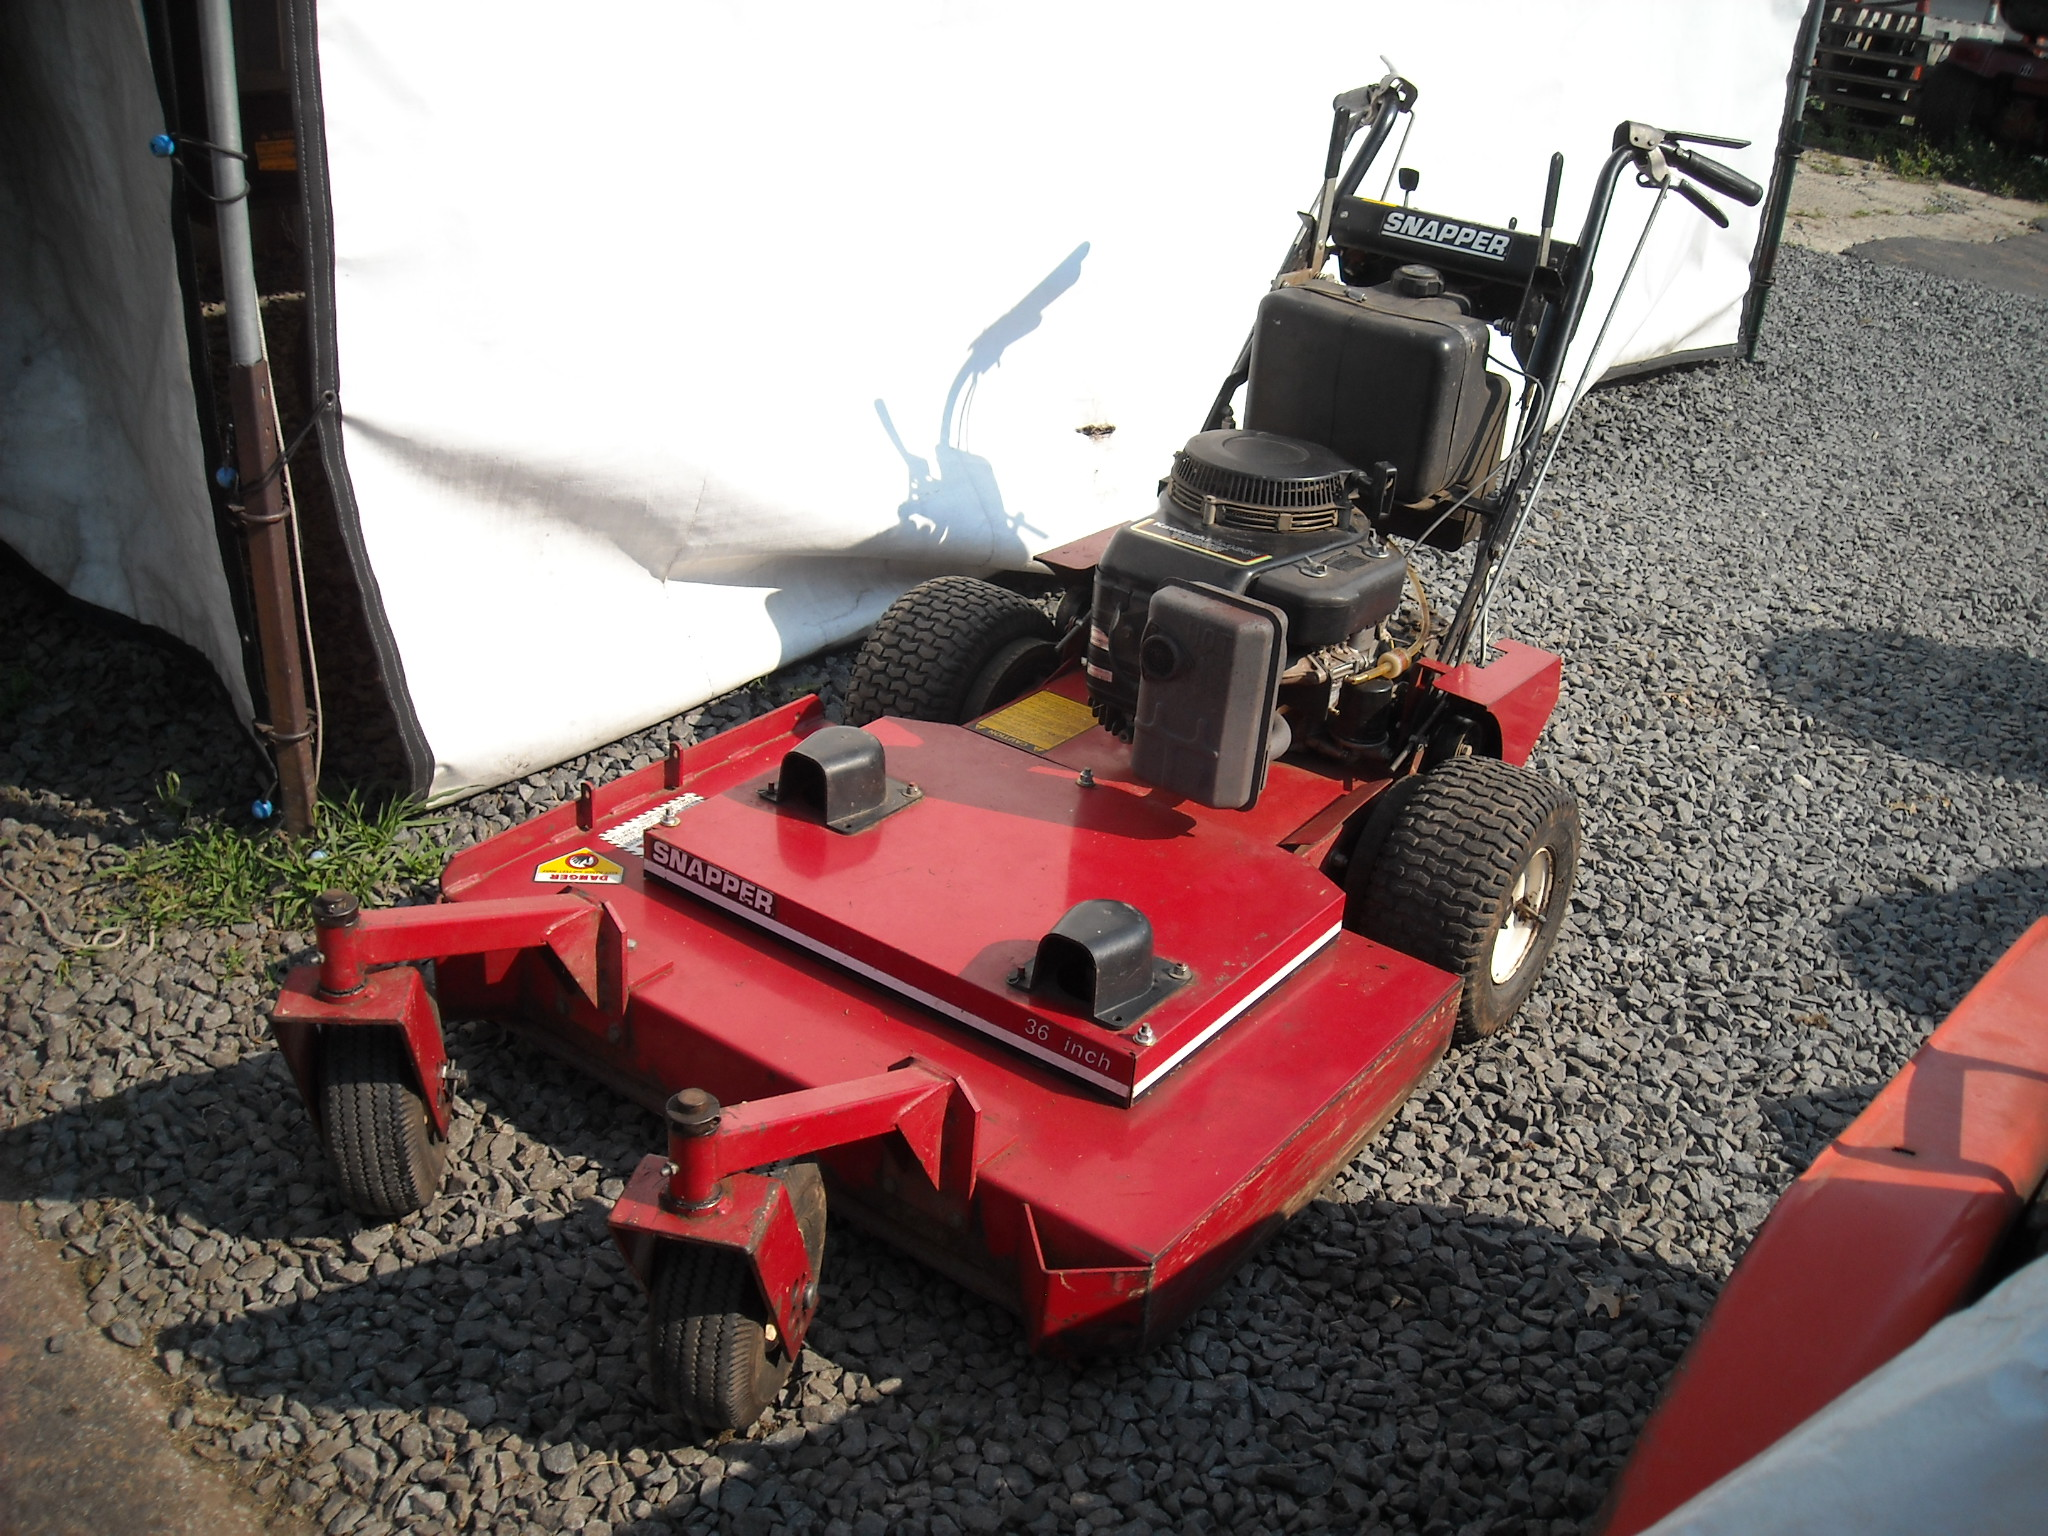 Push mowers - $125-$135